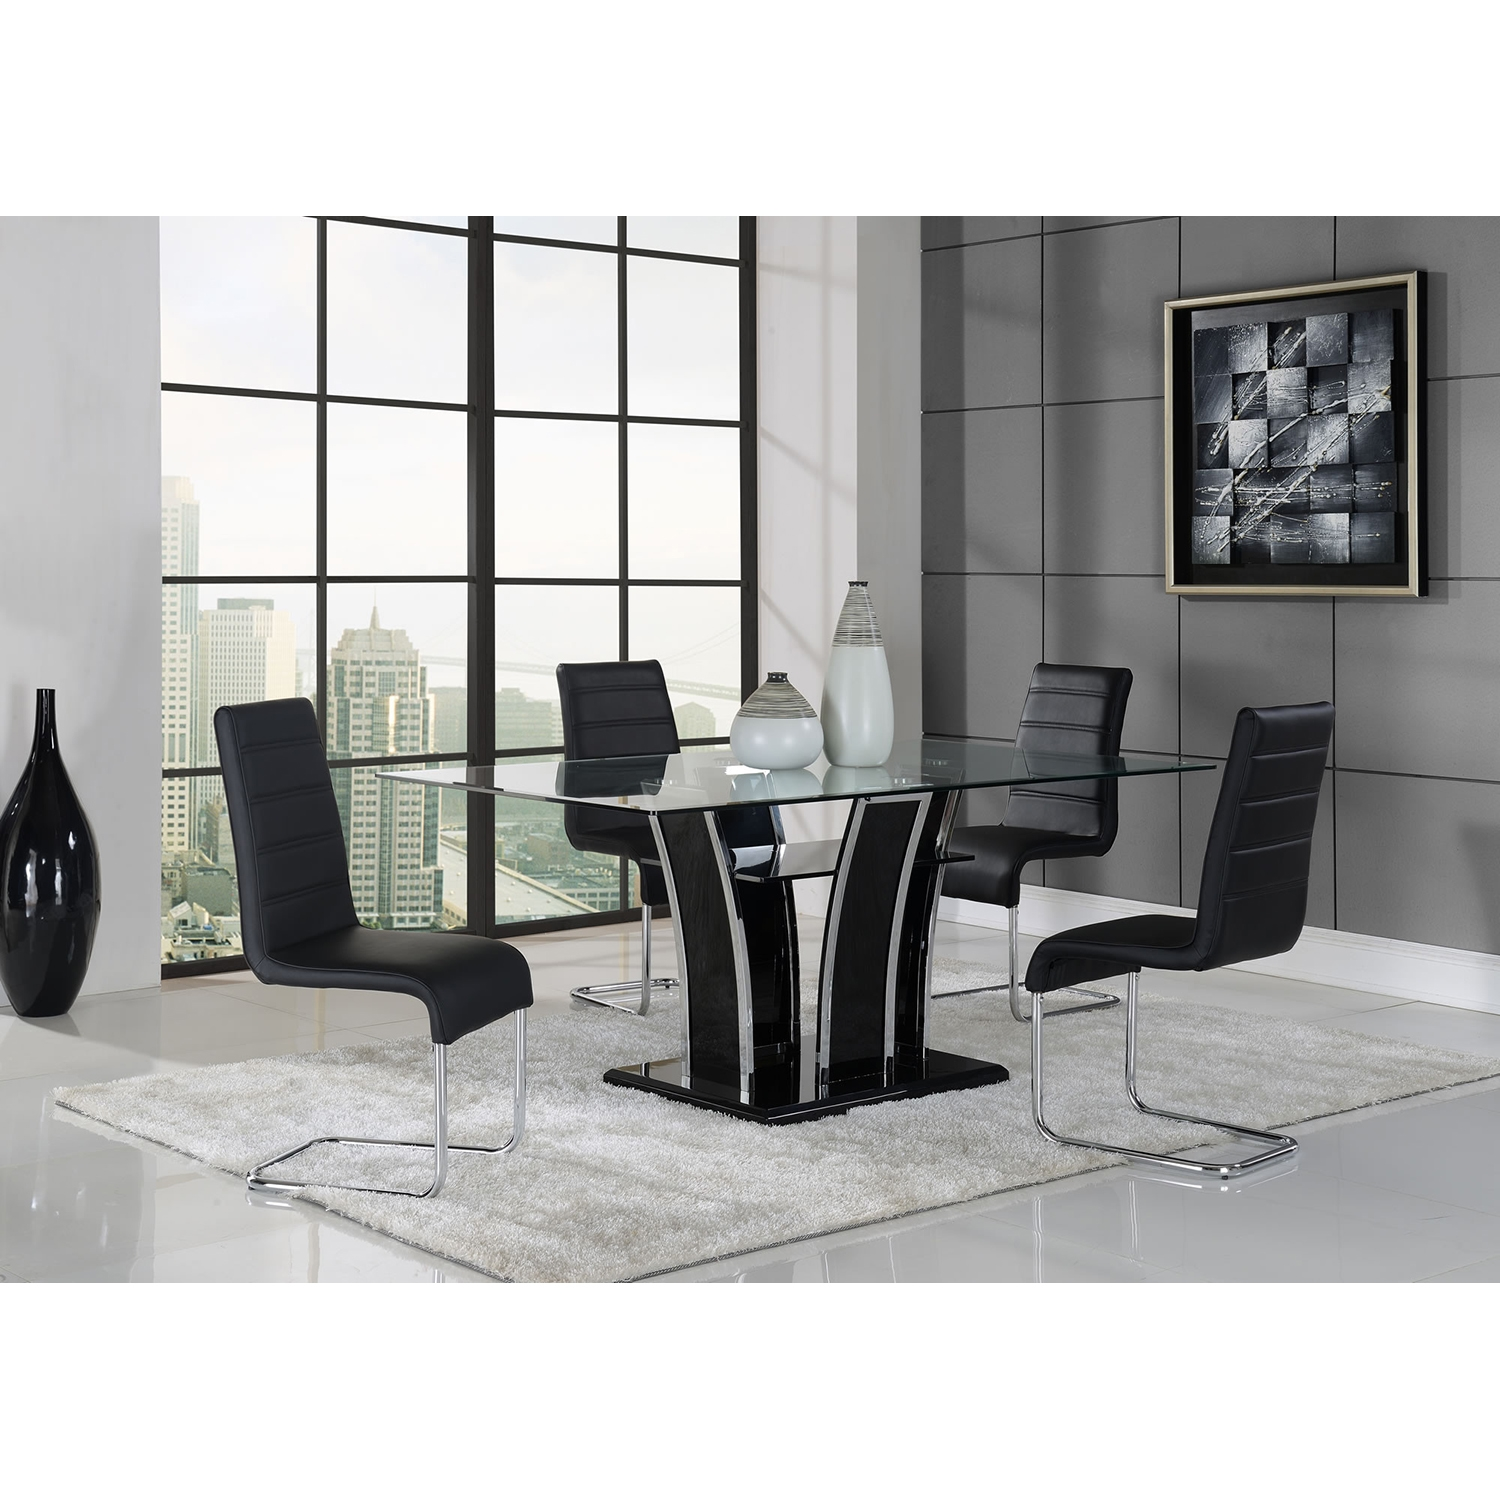 Caitlin 5 Piece Dining Set   Black   GLO D1087DT D1087DC M ...